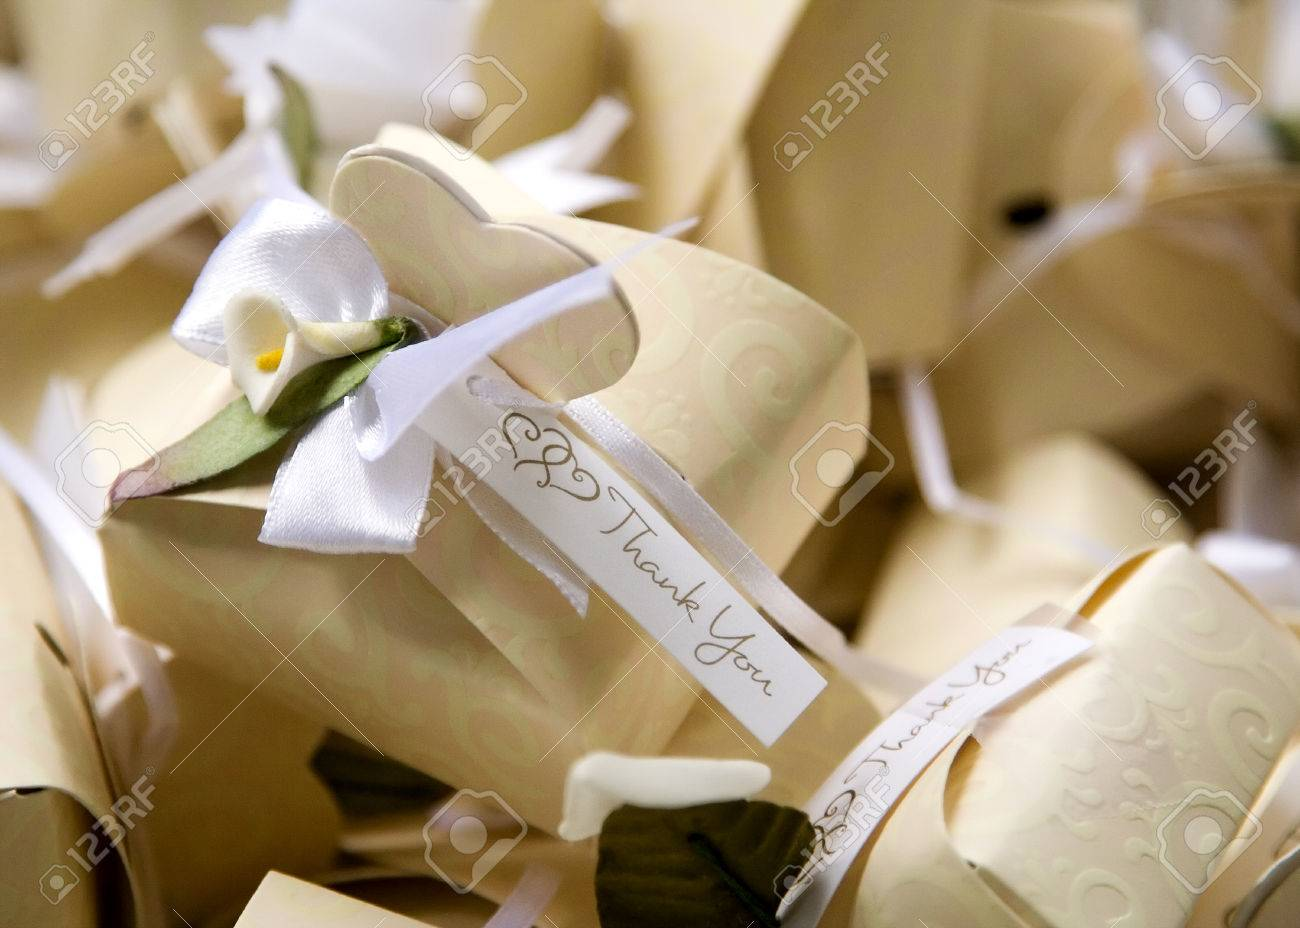 Thank You Gift Box for Special Occasions Stock Photo - 1573276